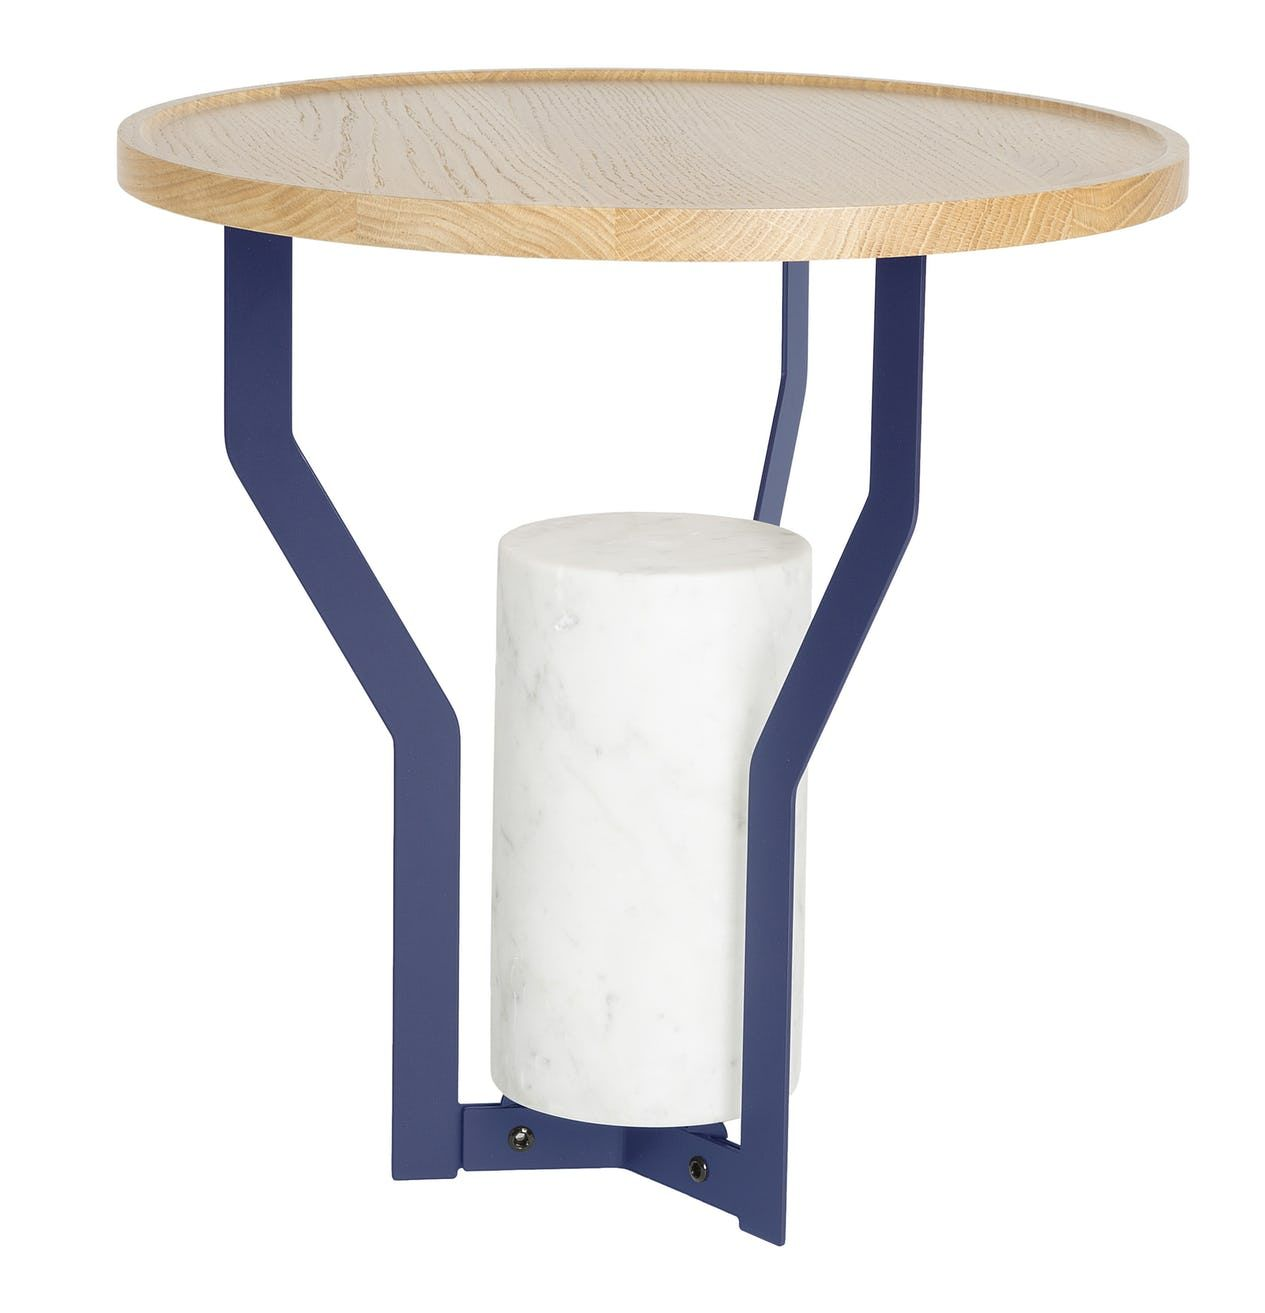 Melanges Table By Covo Furniture Now Available At Haute Living